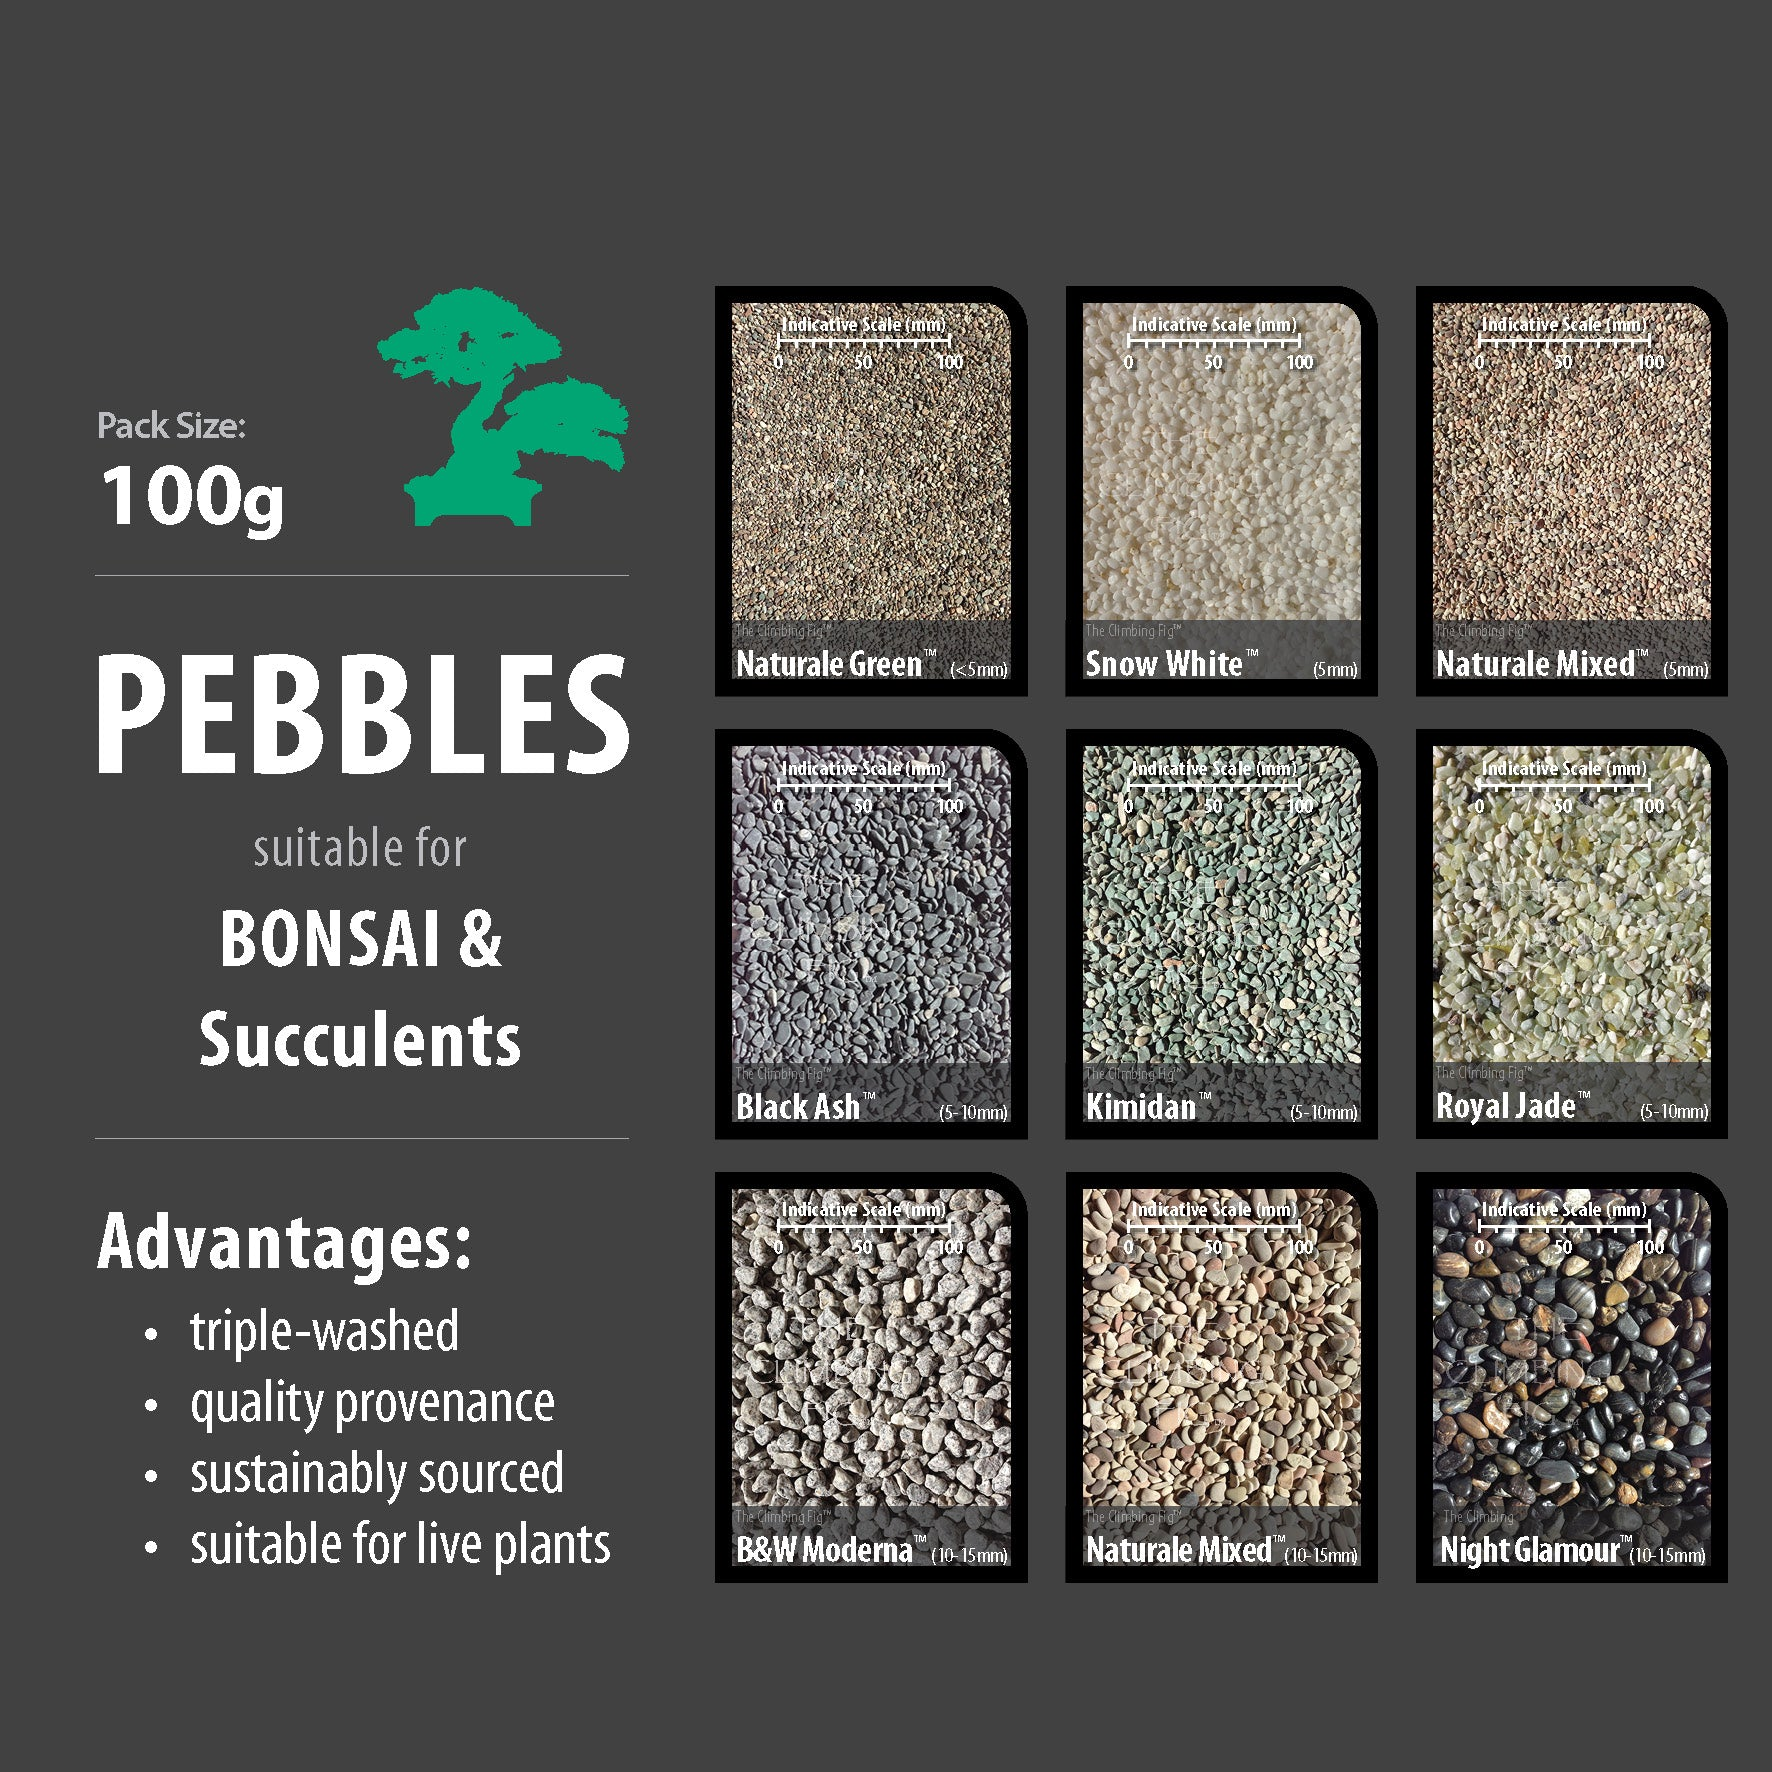 100g Decorative Pebbles for Bonsai, Succulents & Terrariums. Washed large range